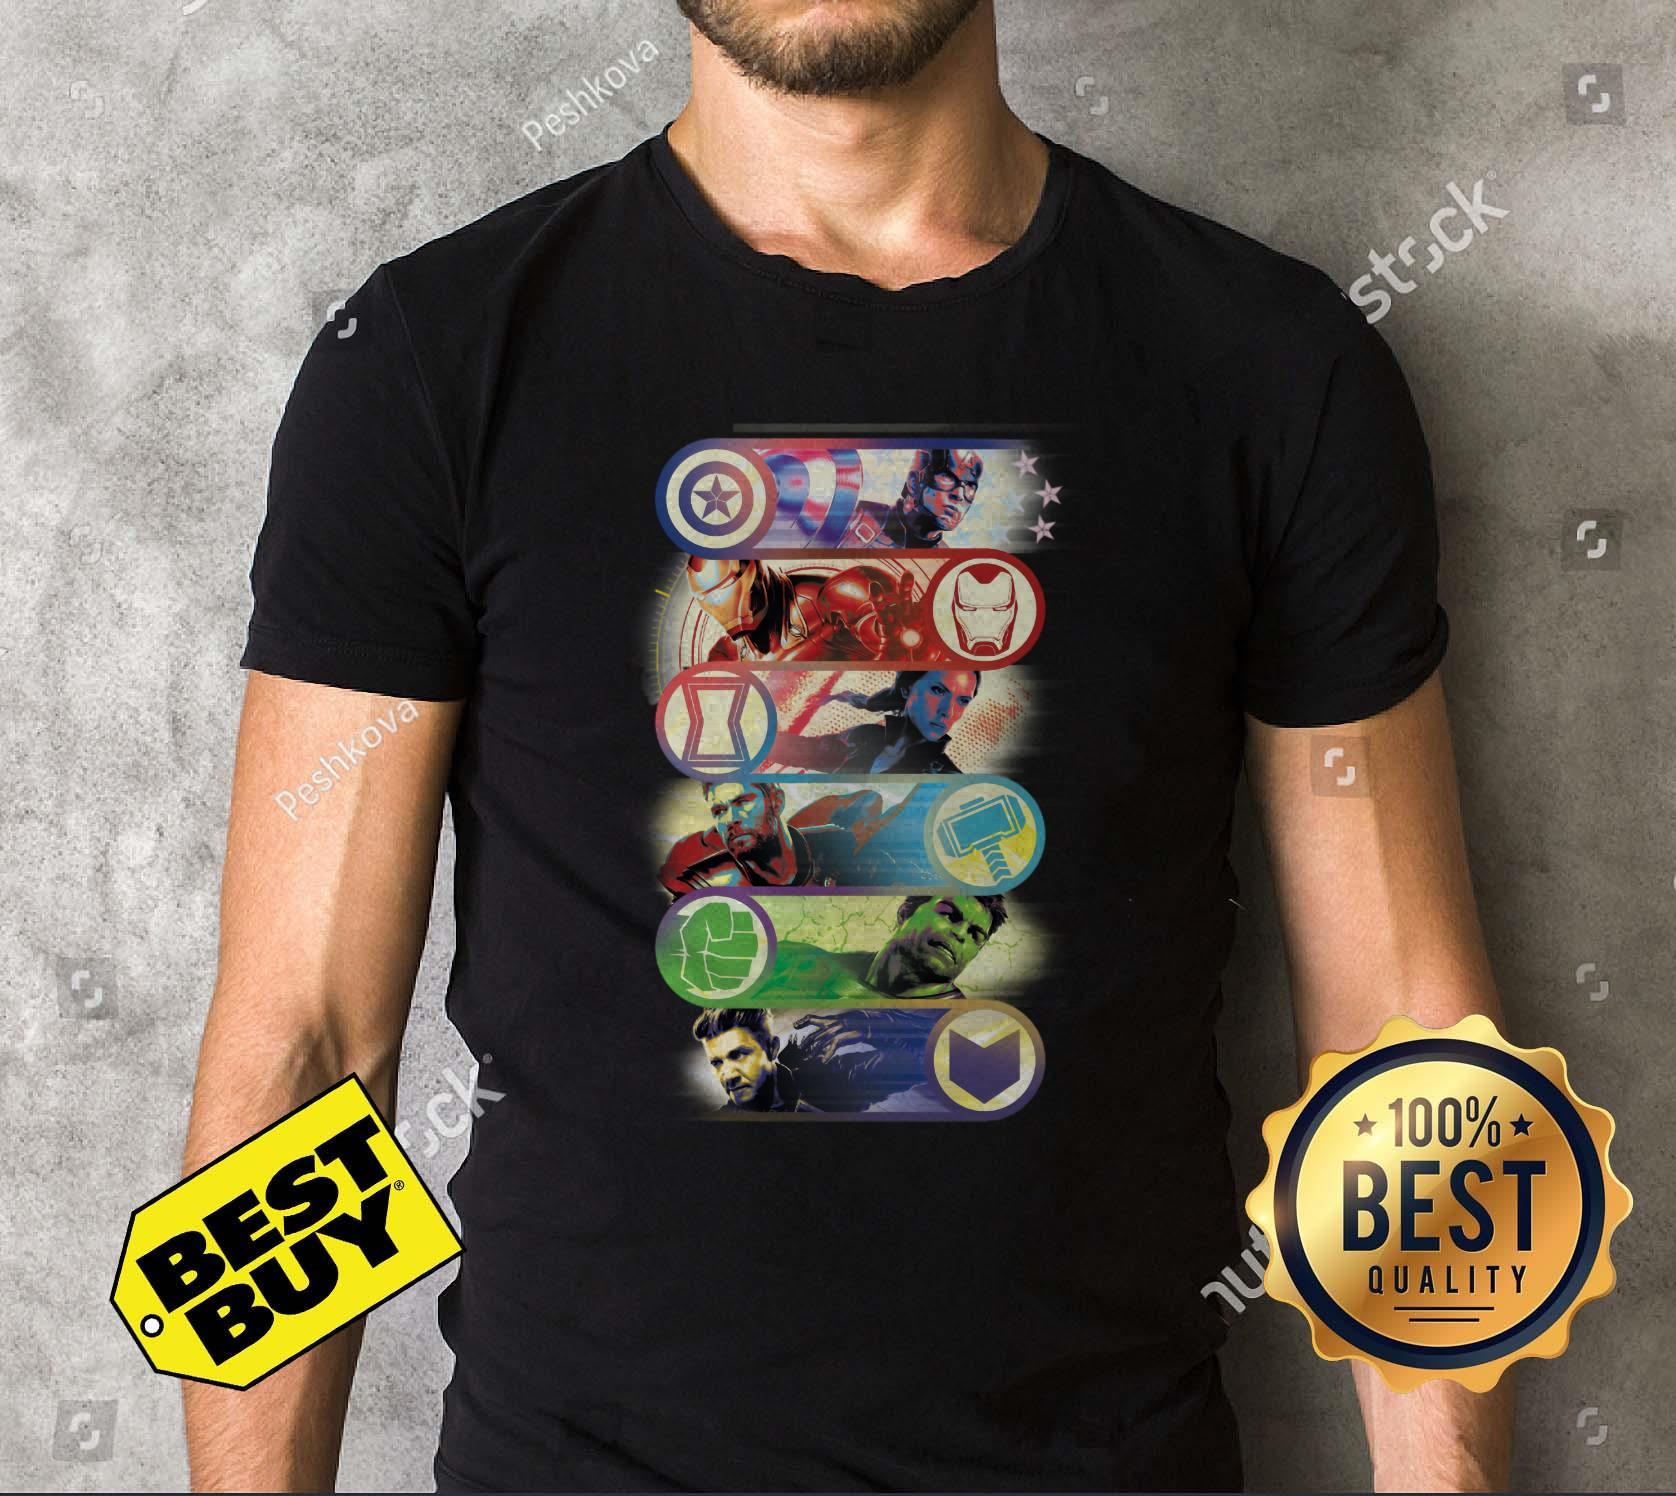 Avengers Endgame Captain America Iron Man Black Widow Thor Hulk Hawkeye One Last Fight V Neck